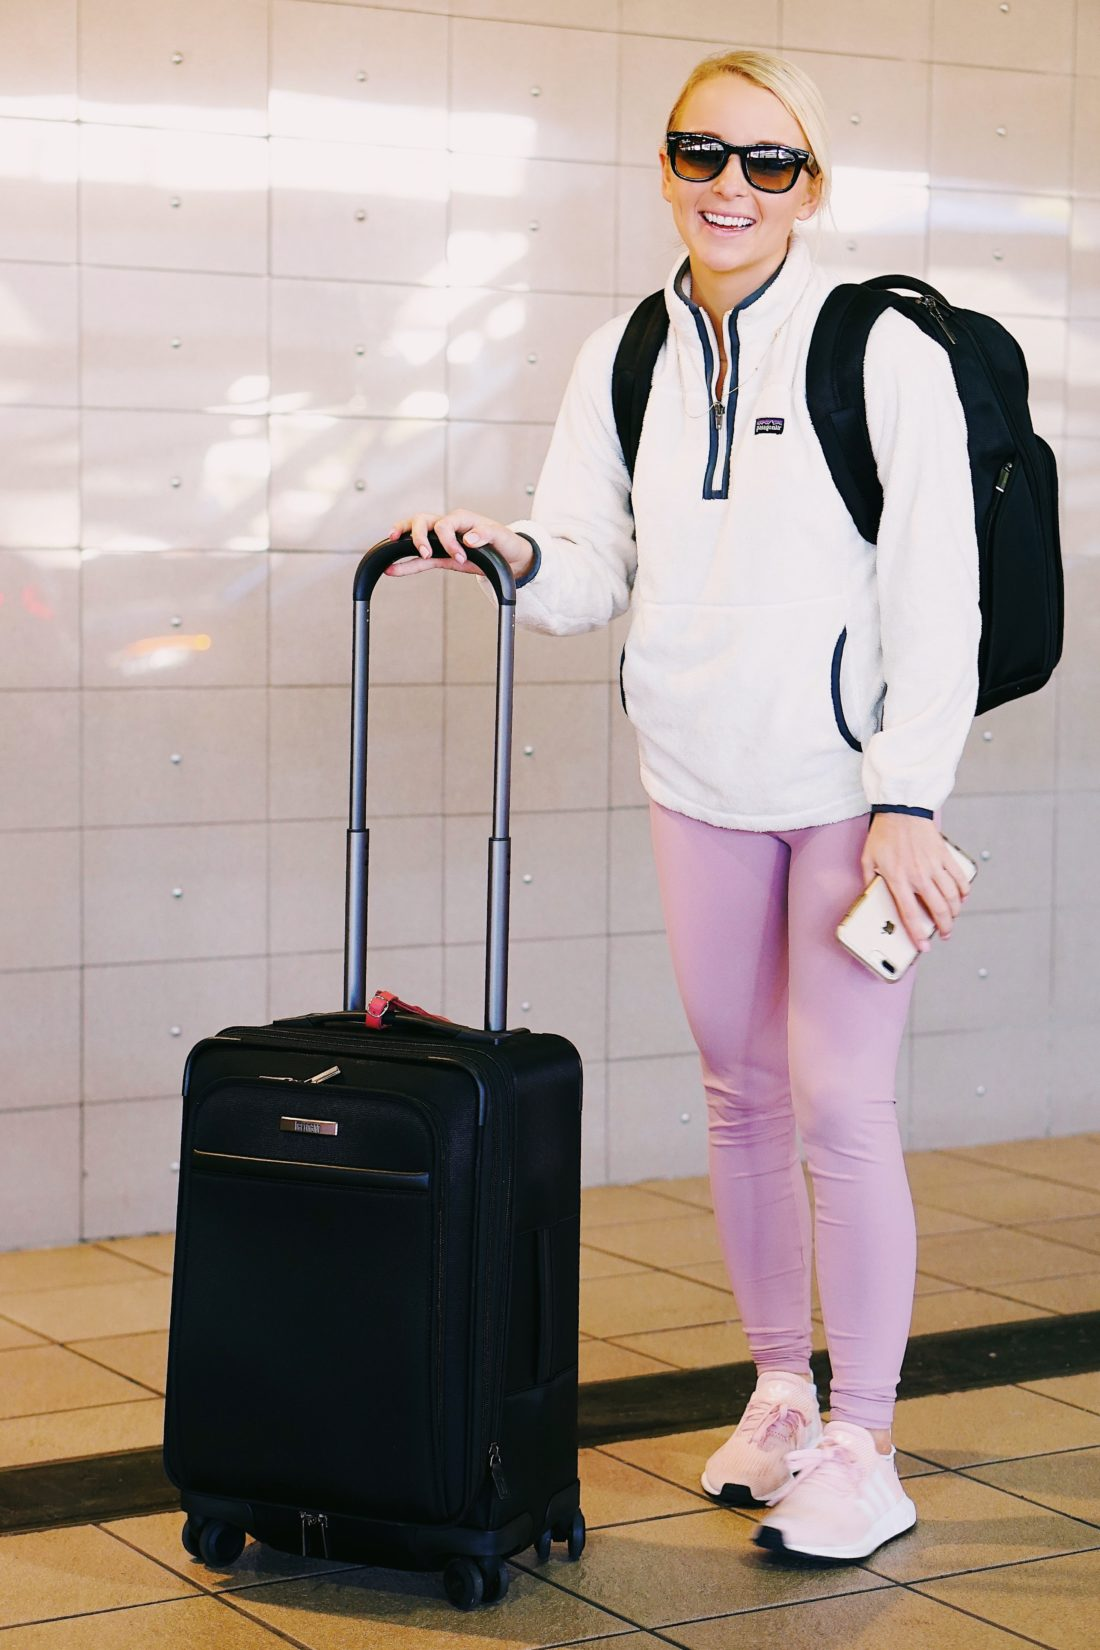 Hartmann carry-on luggage and Addison Bay leggings